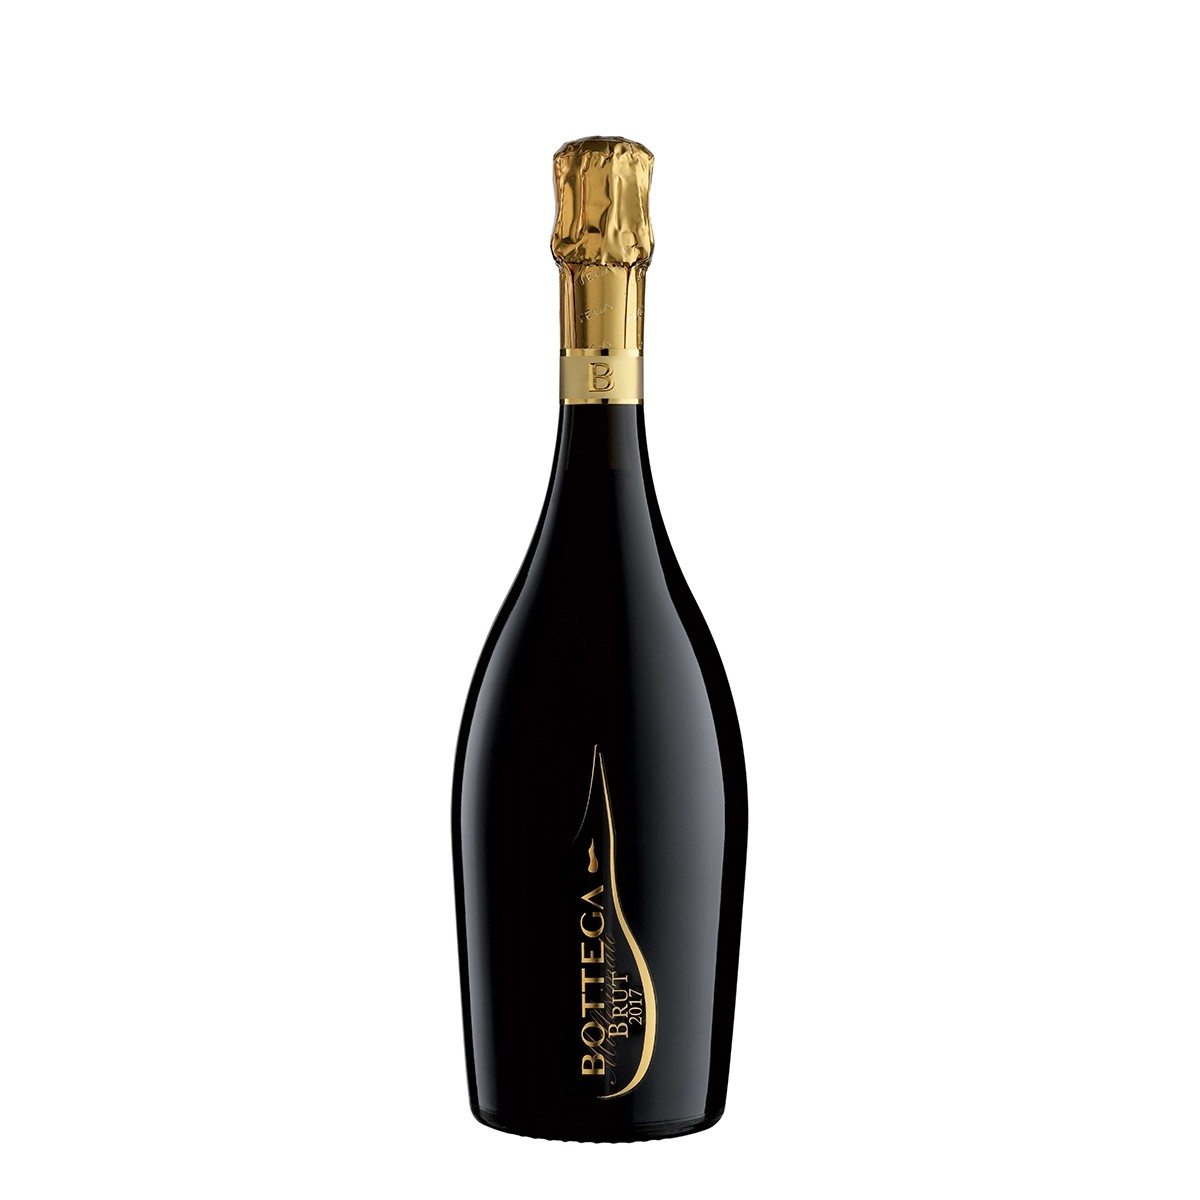 Bottega Millesimato Spumante Brut 750 ml